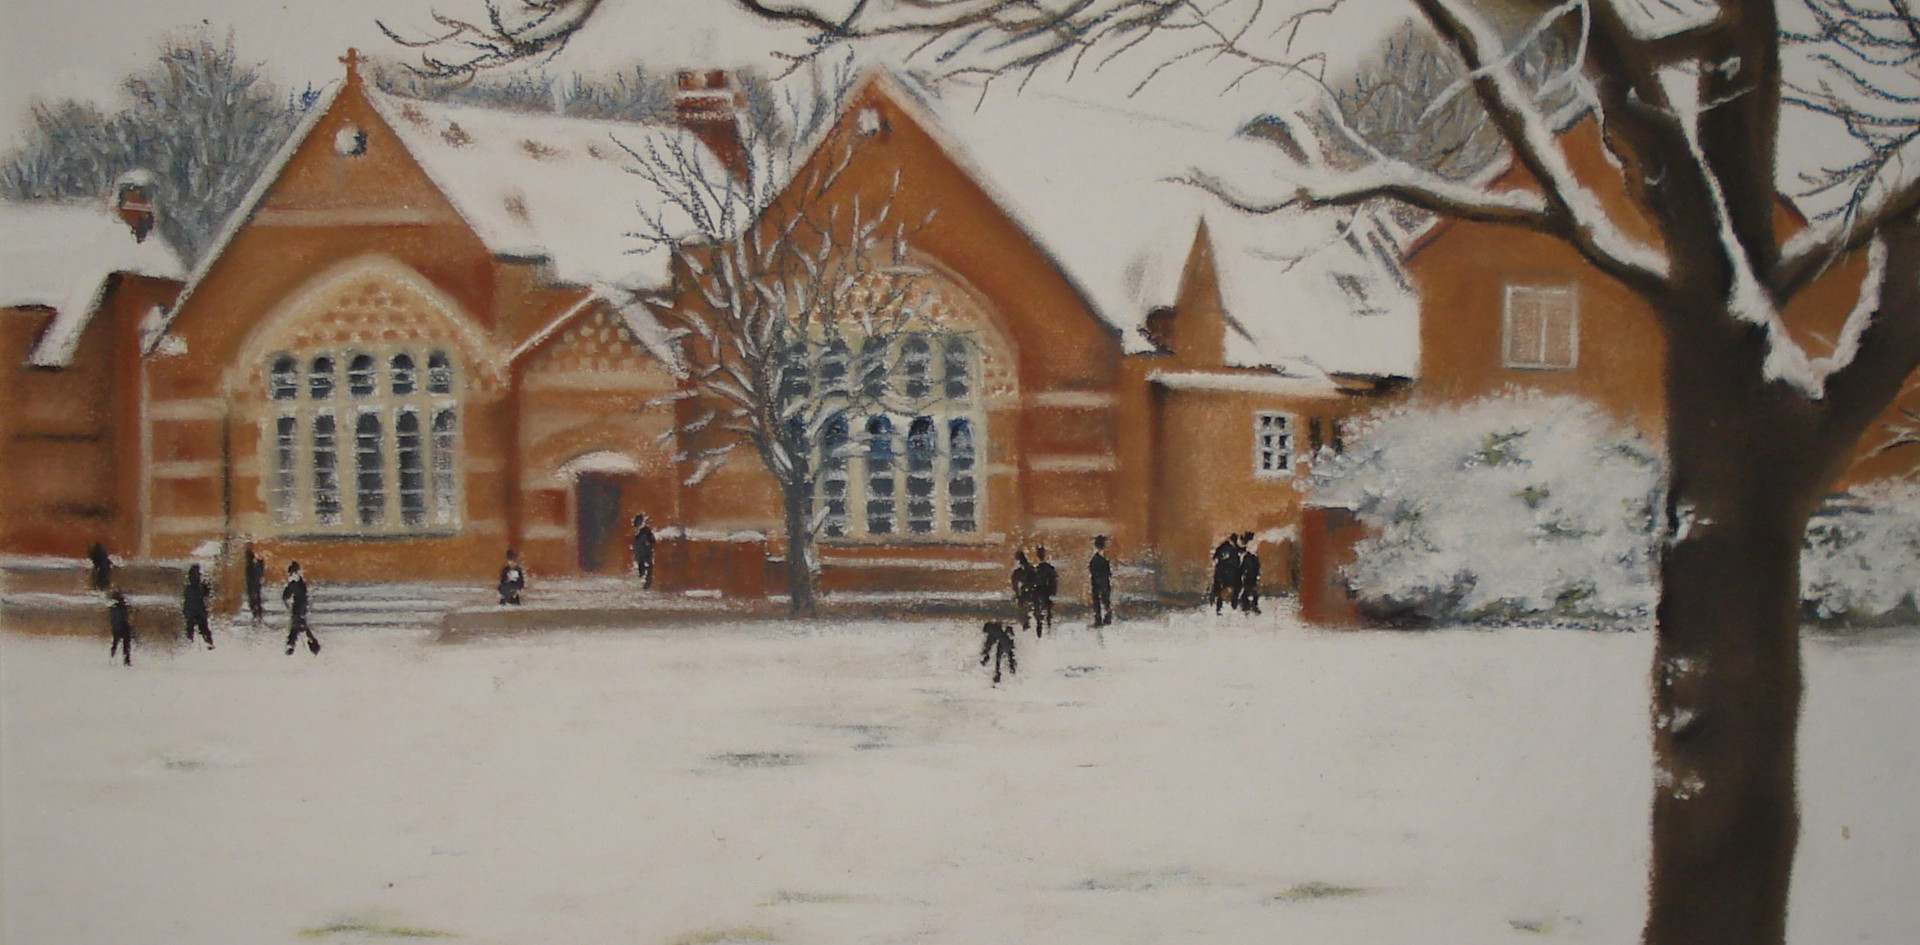 Gordon's School in the snow